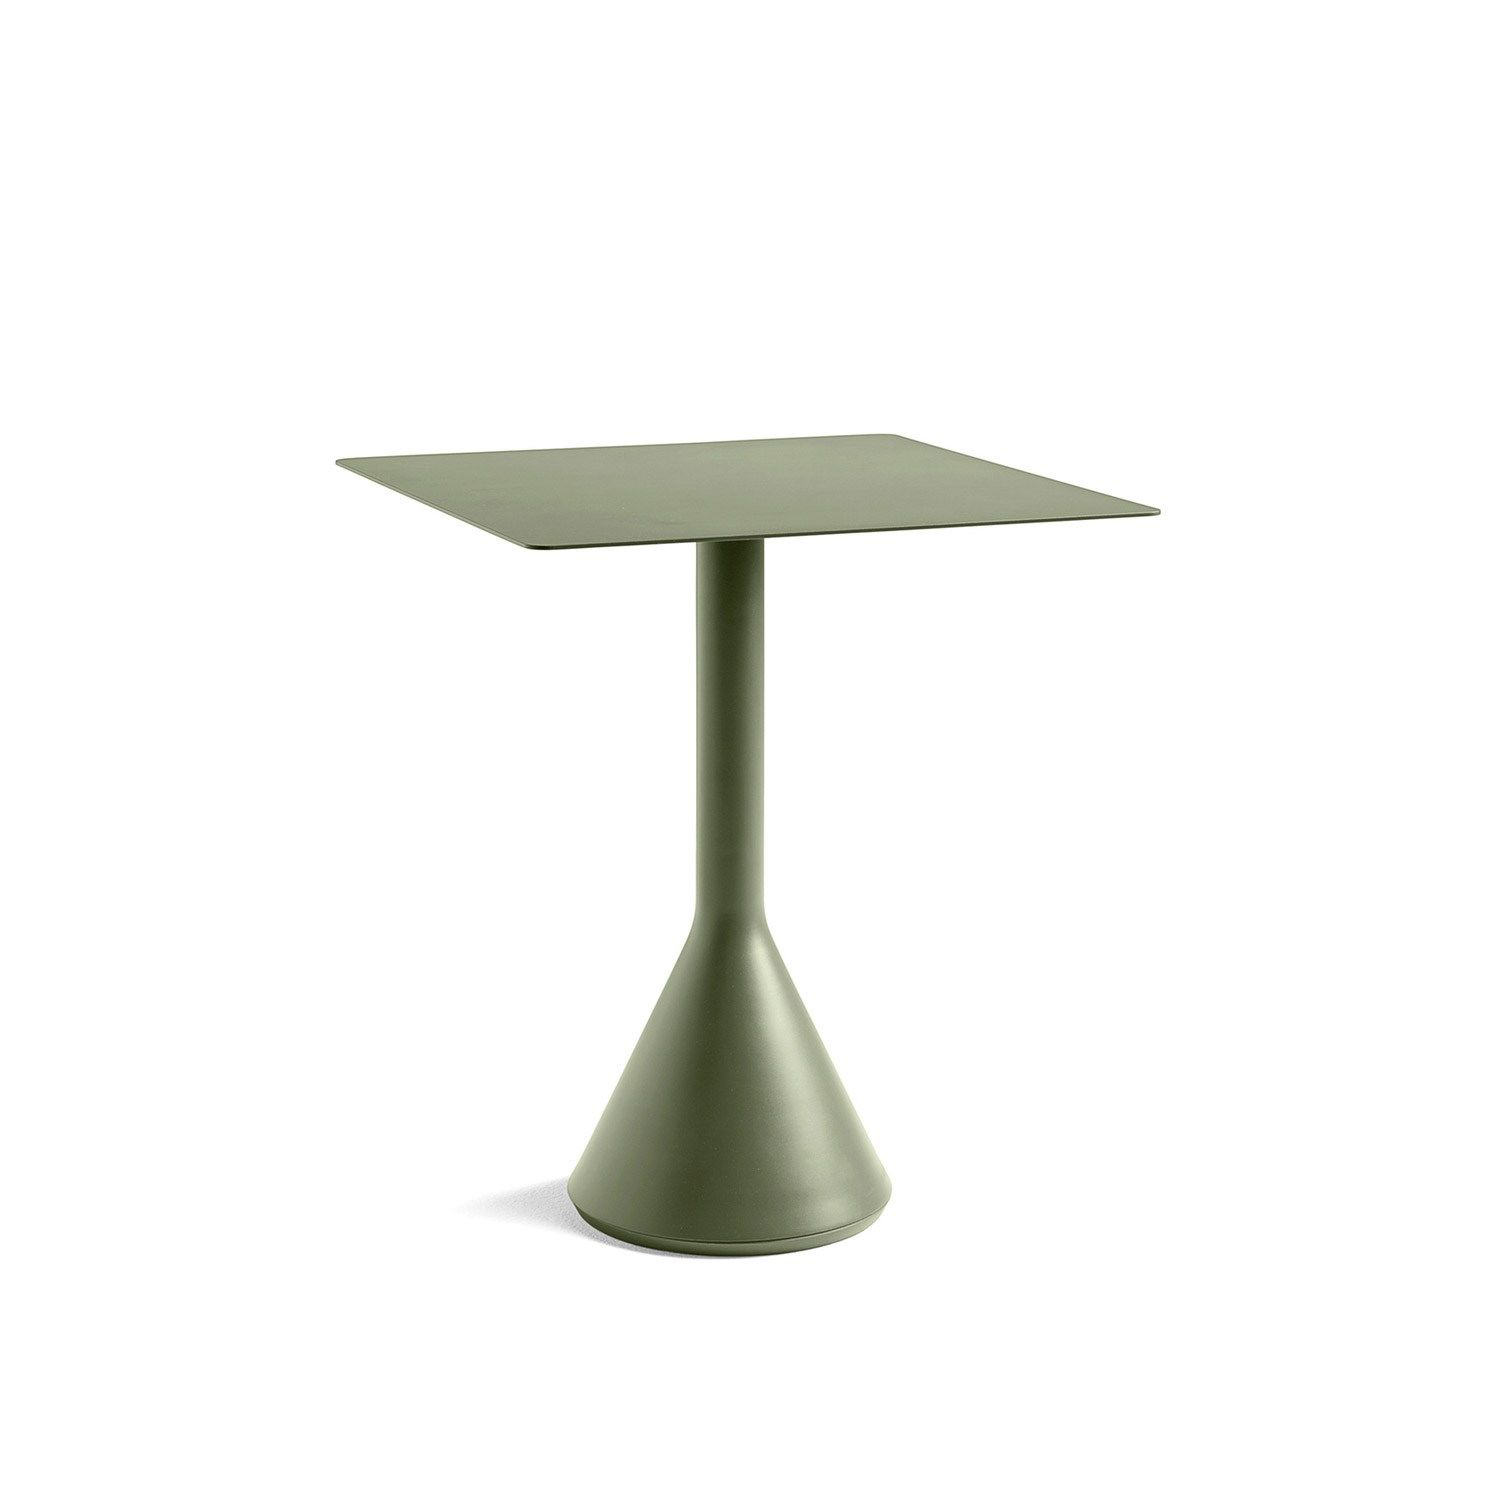 HAY - Palissade bord - Cone - Olive (65x65x74 cm)